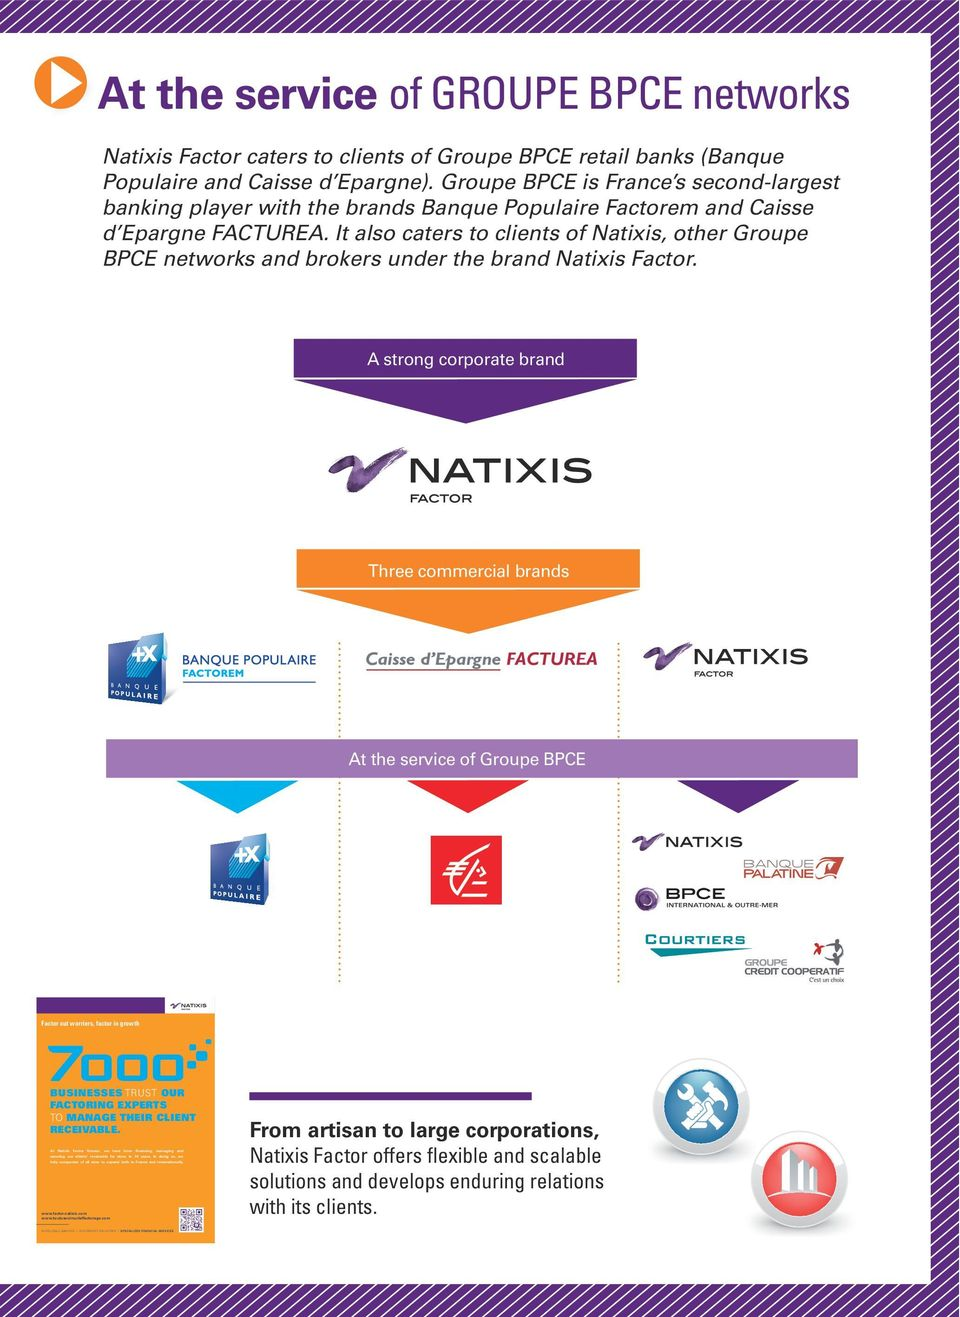 It also caters to clients of Natixis, other Groupe BPCE networks and brokers under the brand Natixis Factor.